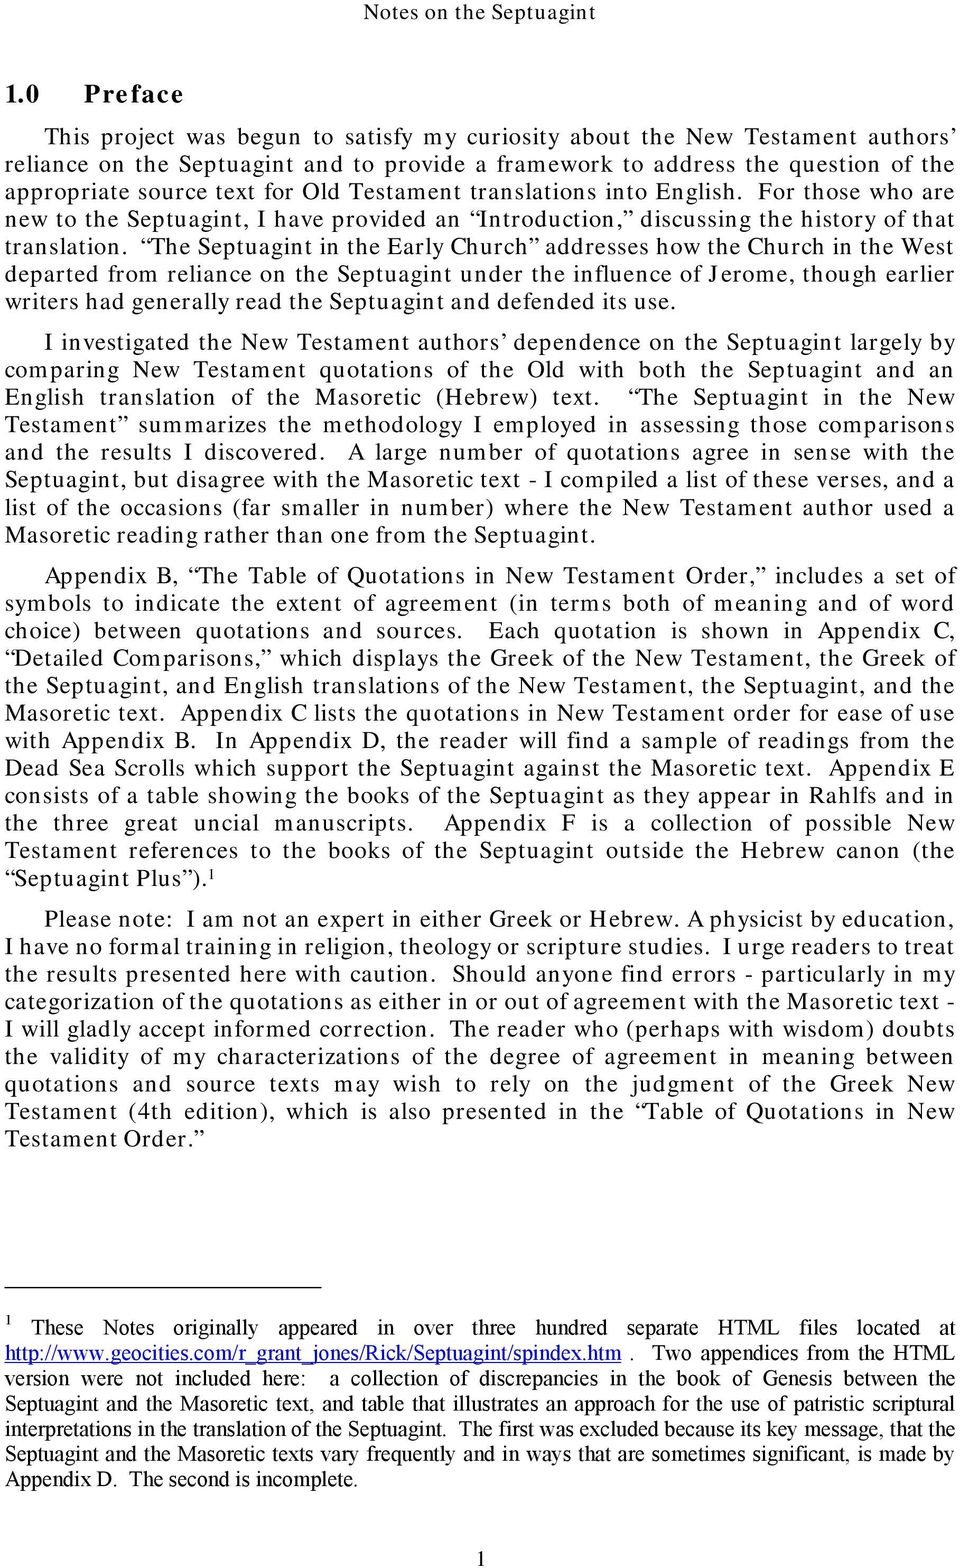 The Septuagint in the Early Church addresses how the Church in the West departed from reliance on the Septuagint under the influence of Jerome, though earlier writers had generally read the